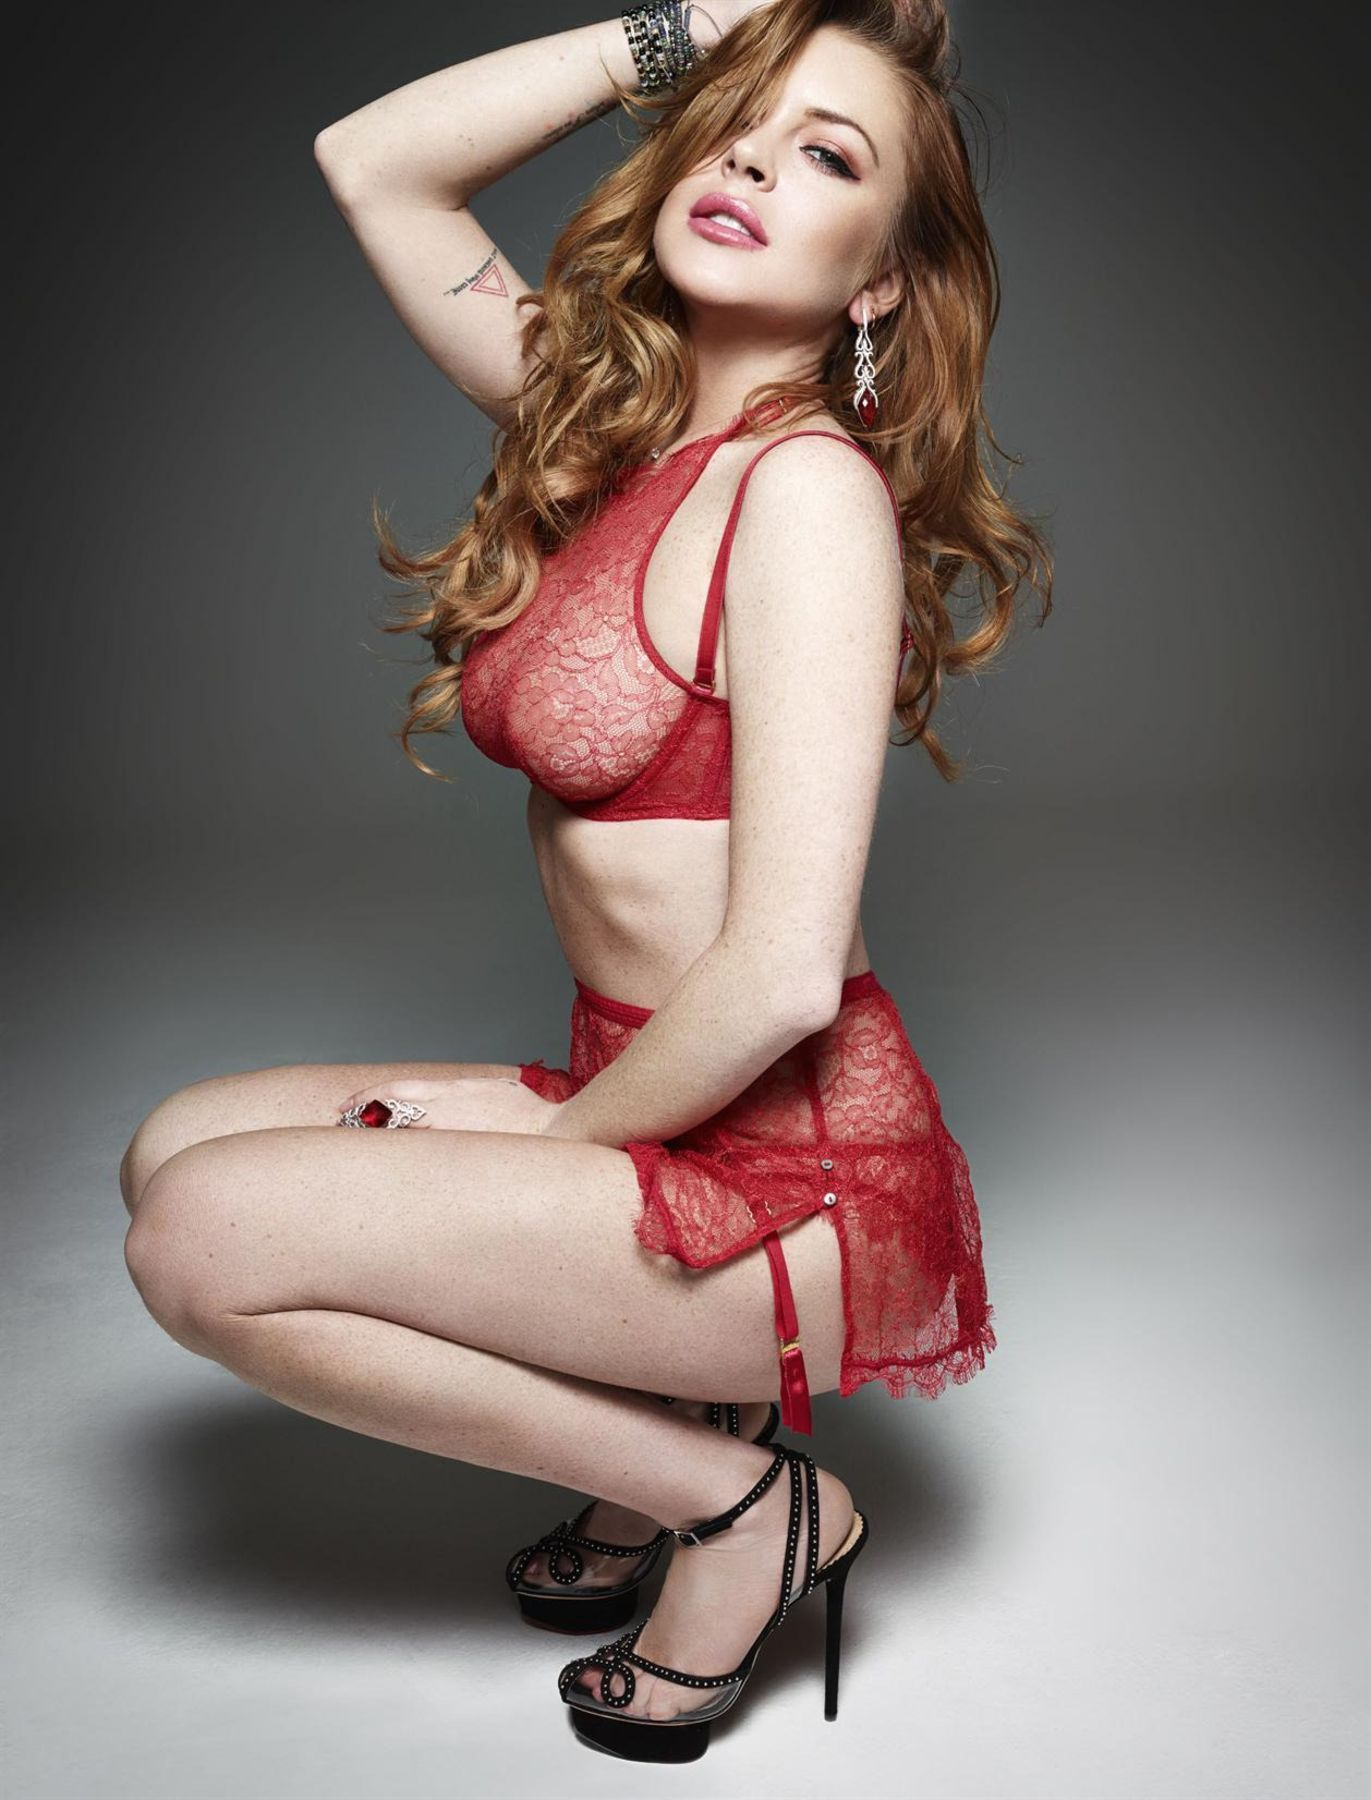 The Sexiest Lindsay Lohan Pic Of All Time naked (83 image)